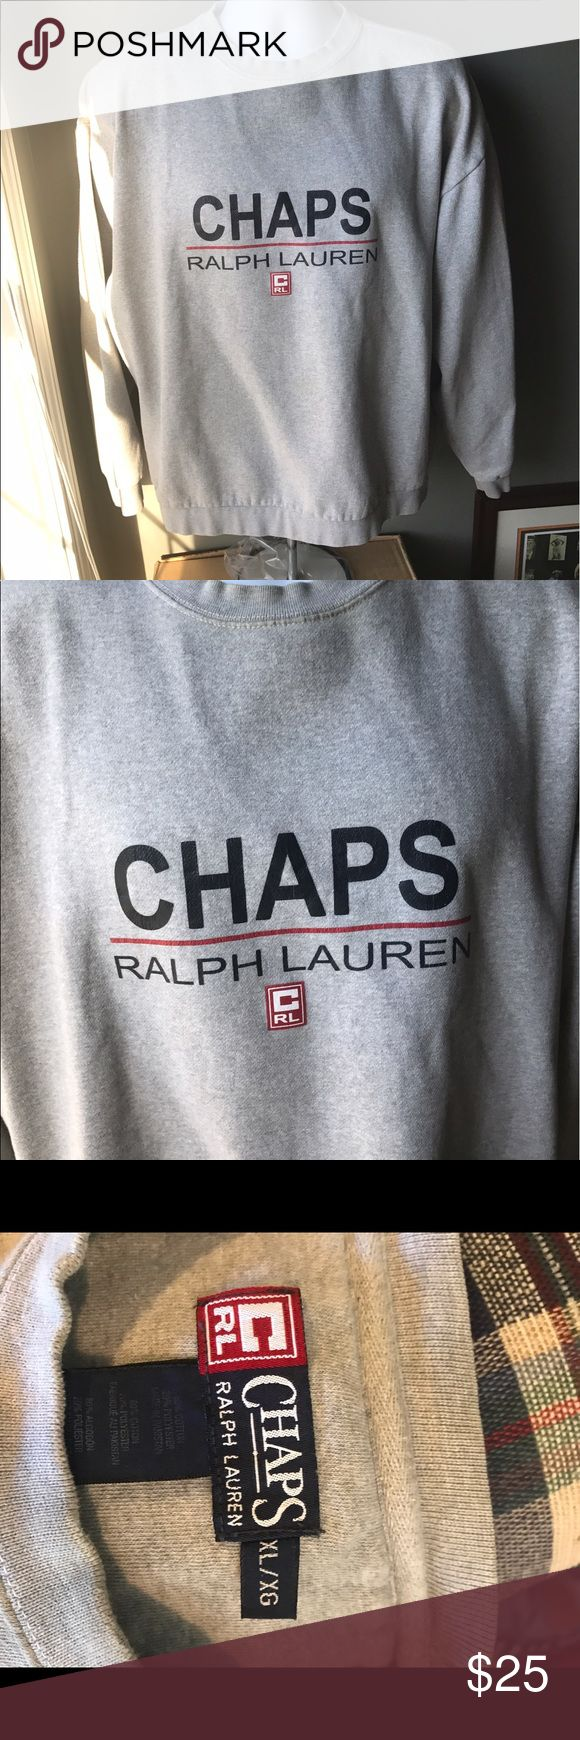 Vintage Chaps Ralph Lauren sweatshirt spelled out Very nice sweatshirt by Chaps RL. Small stain on front collar, not noticeable unless up close. Fits XL. chaps ralph lauren Sweaters Crewneck